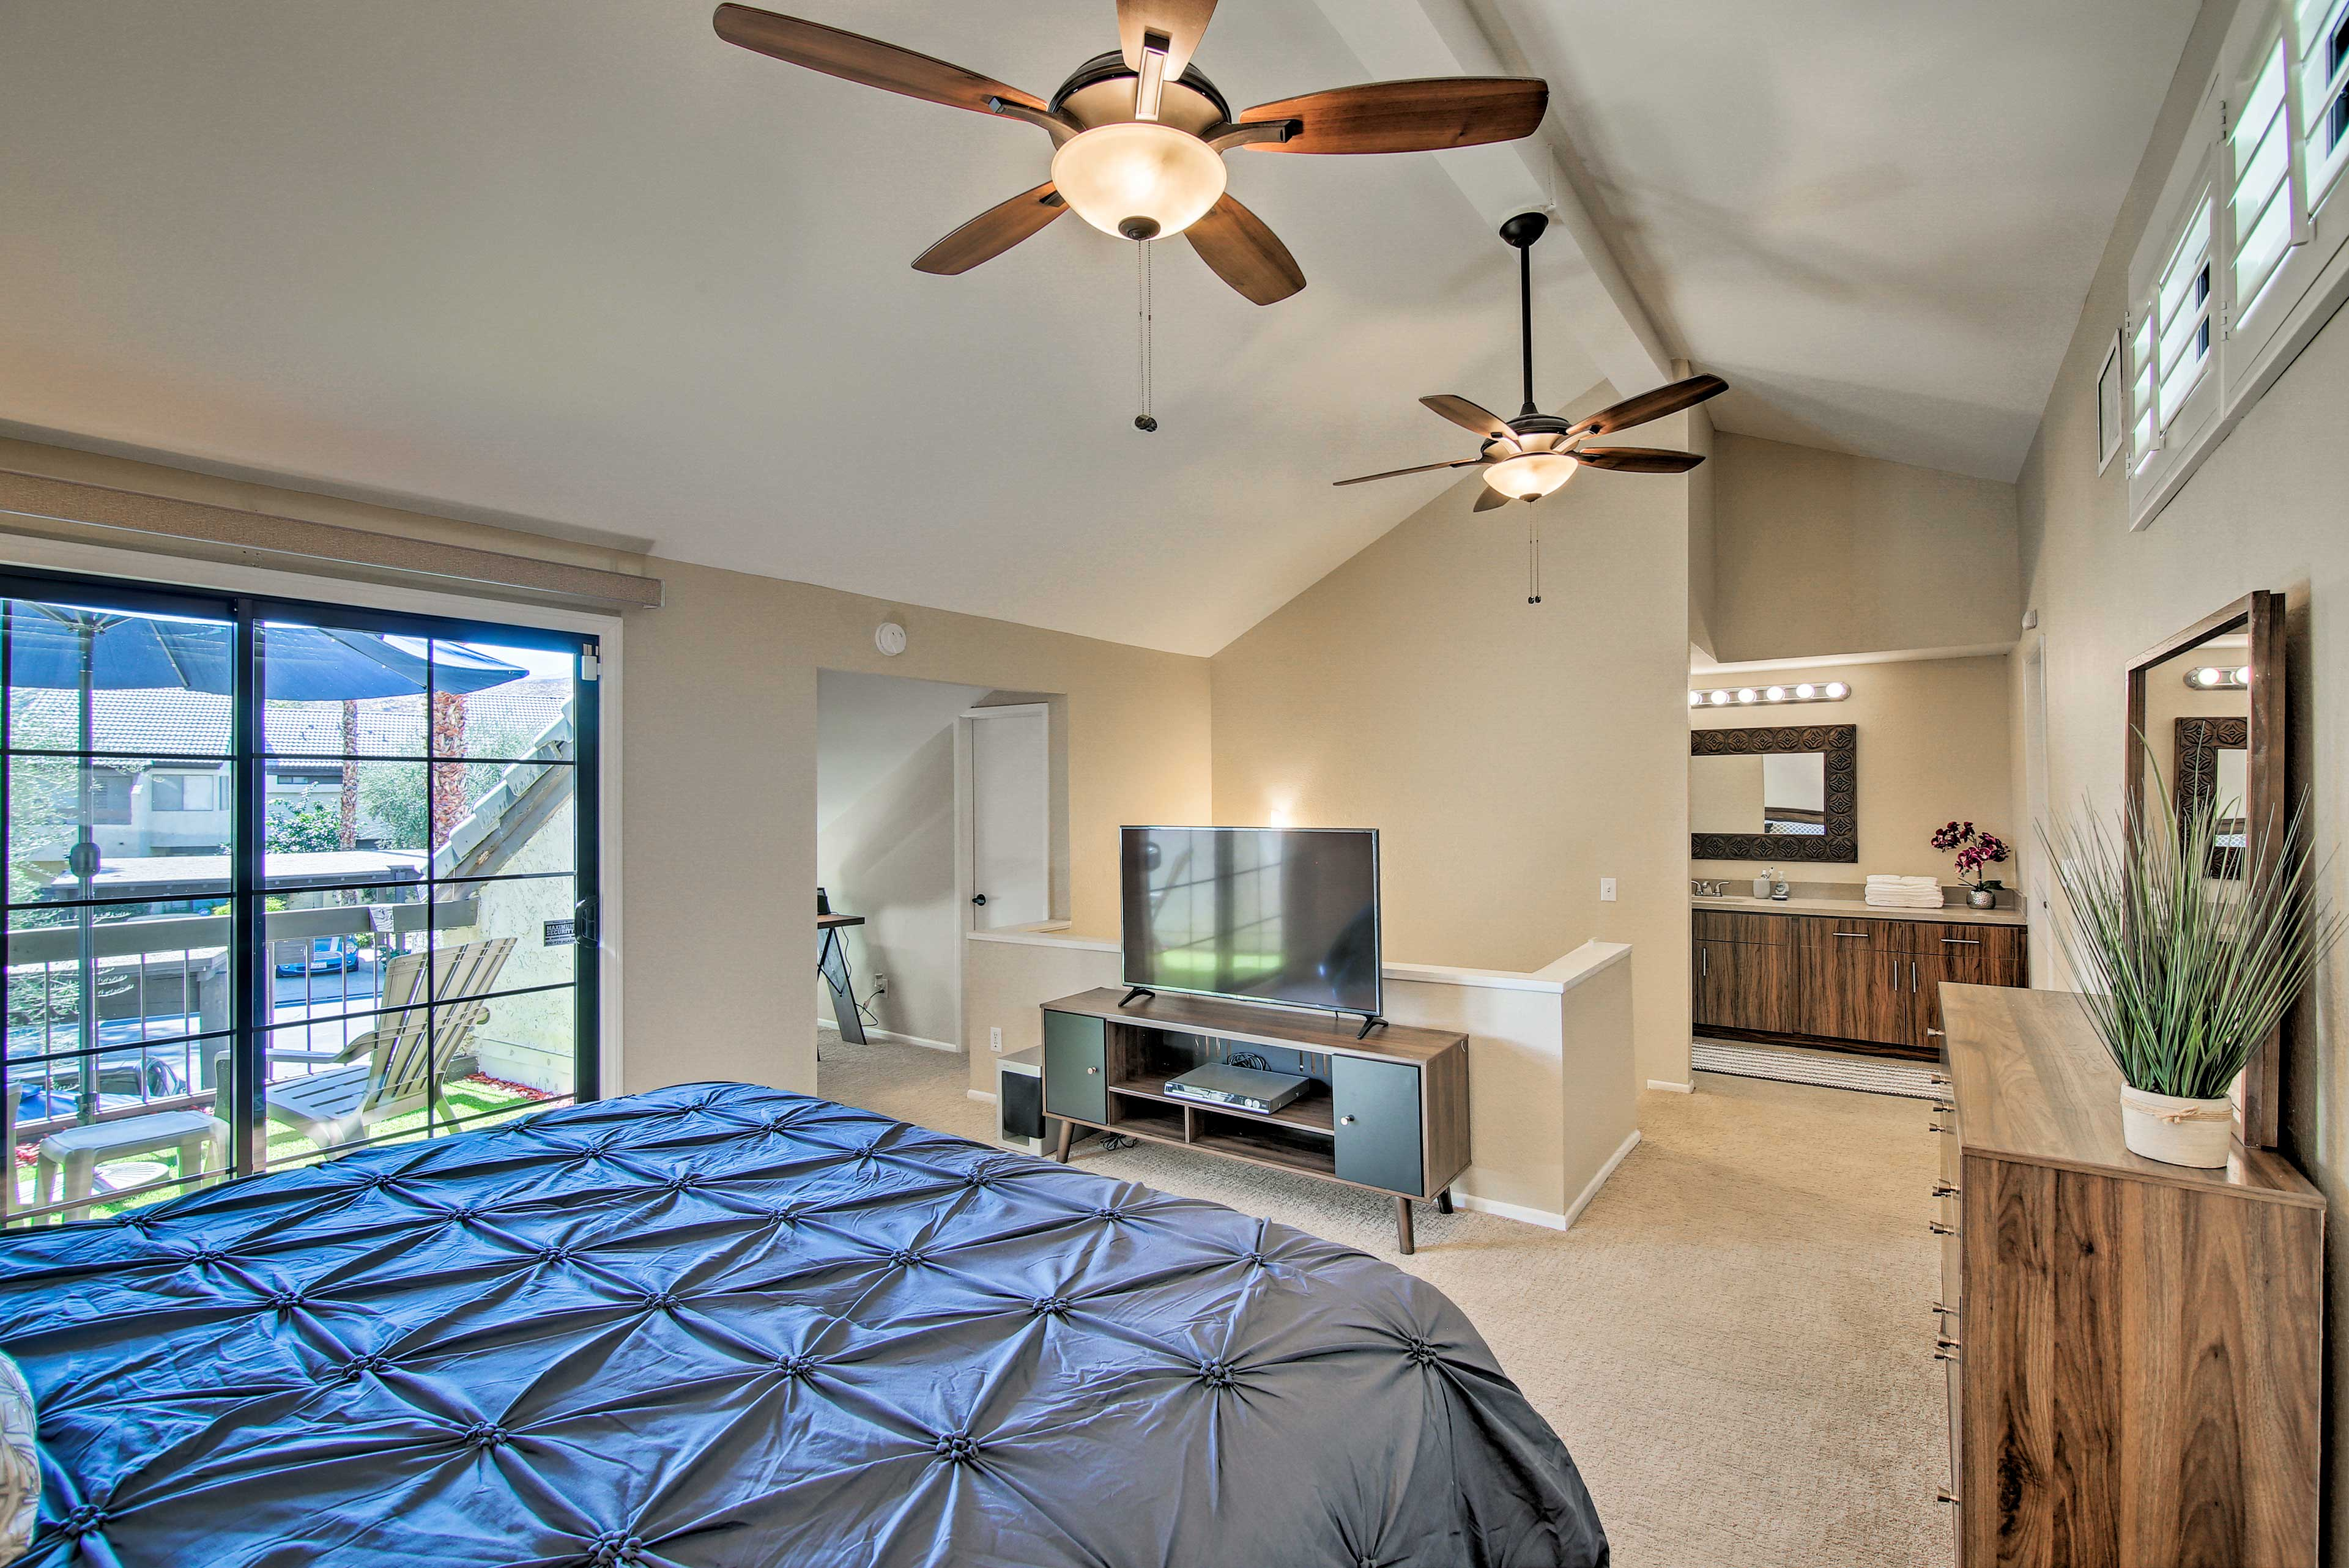 It features a king-sized bed, en-suite bath, and laptop-friendly work space.